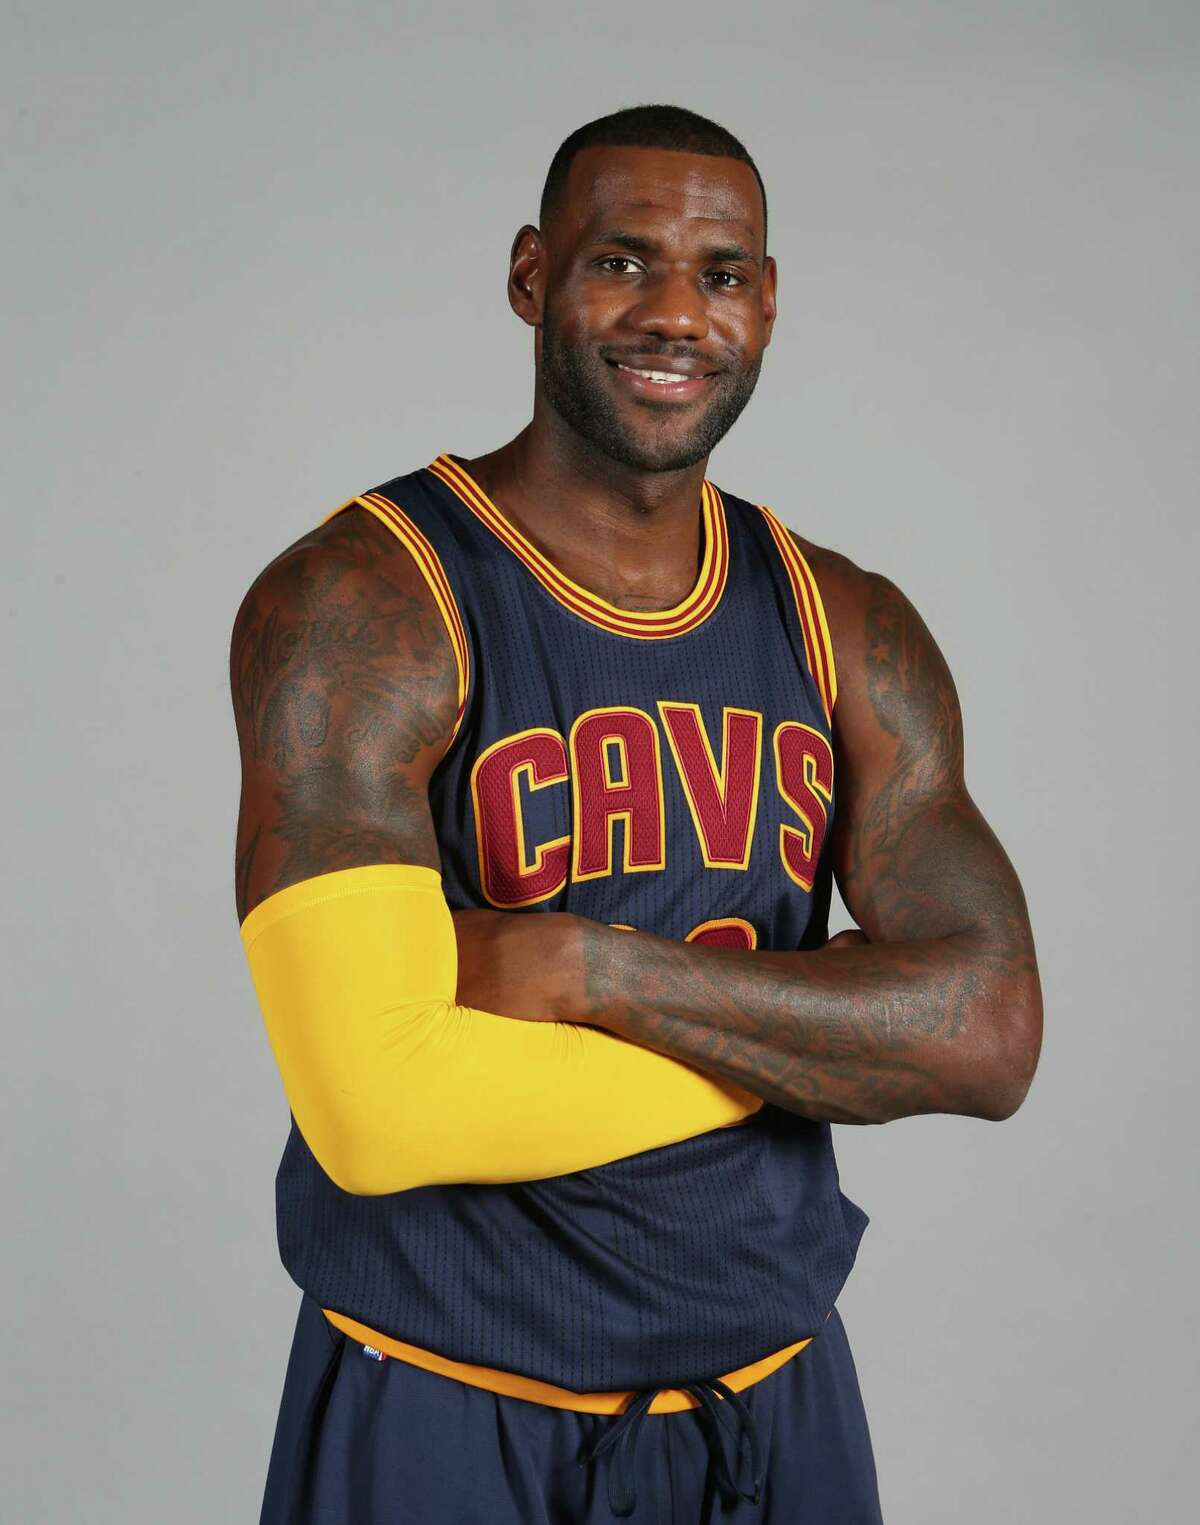 This is Sept. 28, 2015 photo shows Cleveland Cavaliers' LeBron James posed during the NBA team's media day Independence, Ohio.